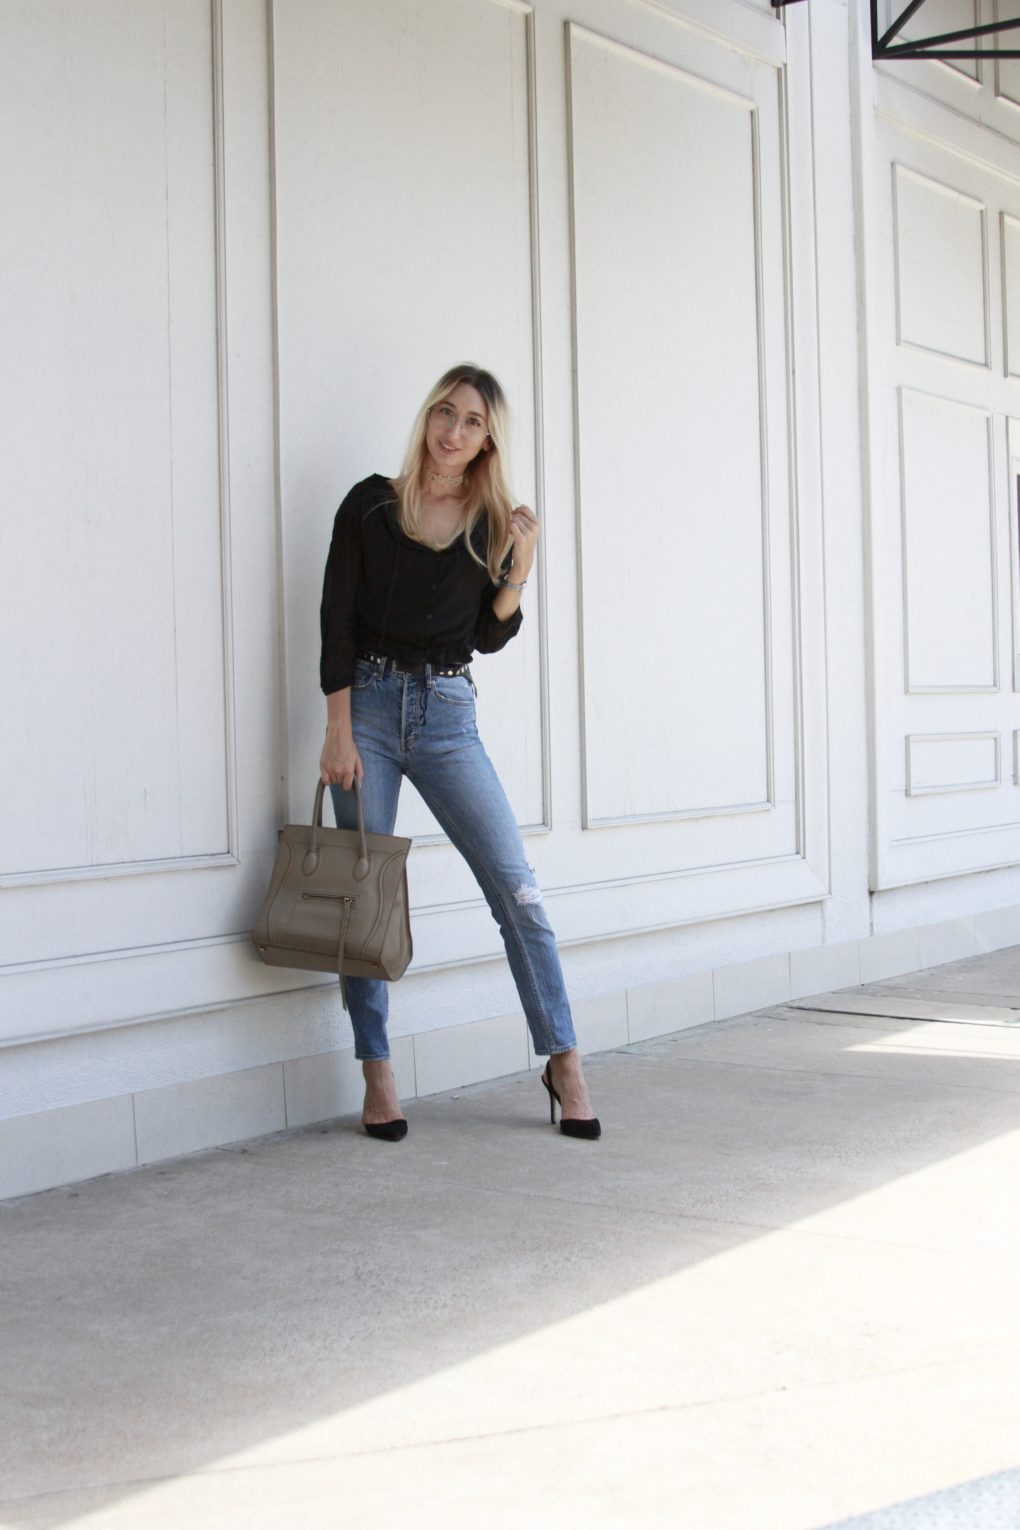 Jeans on Repeat: Favorite Pair of High Waisted Jeans